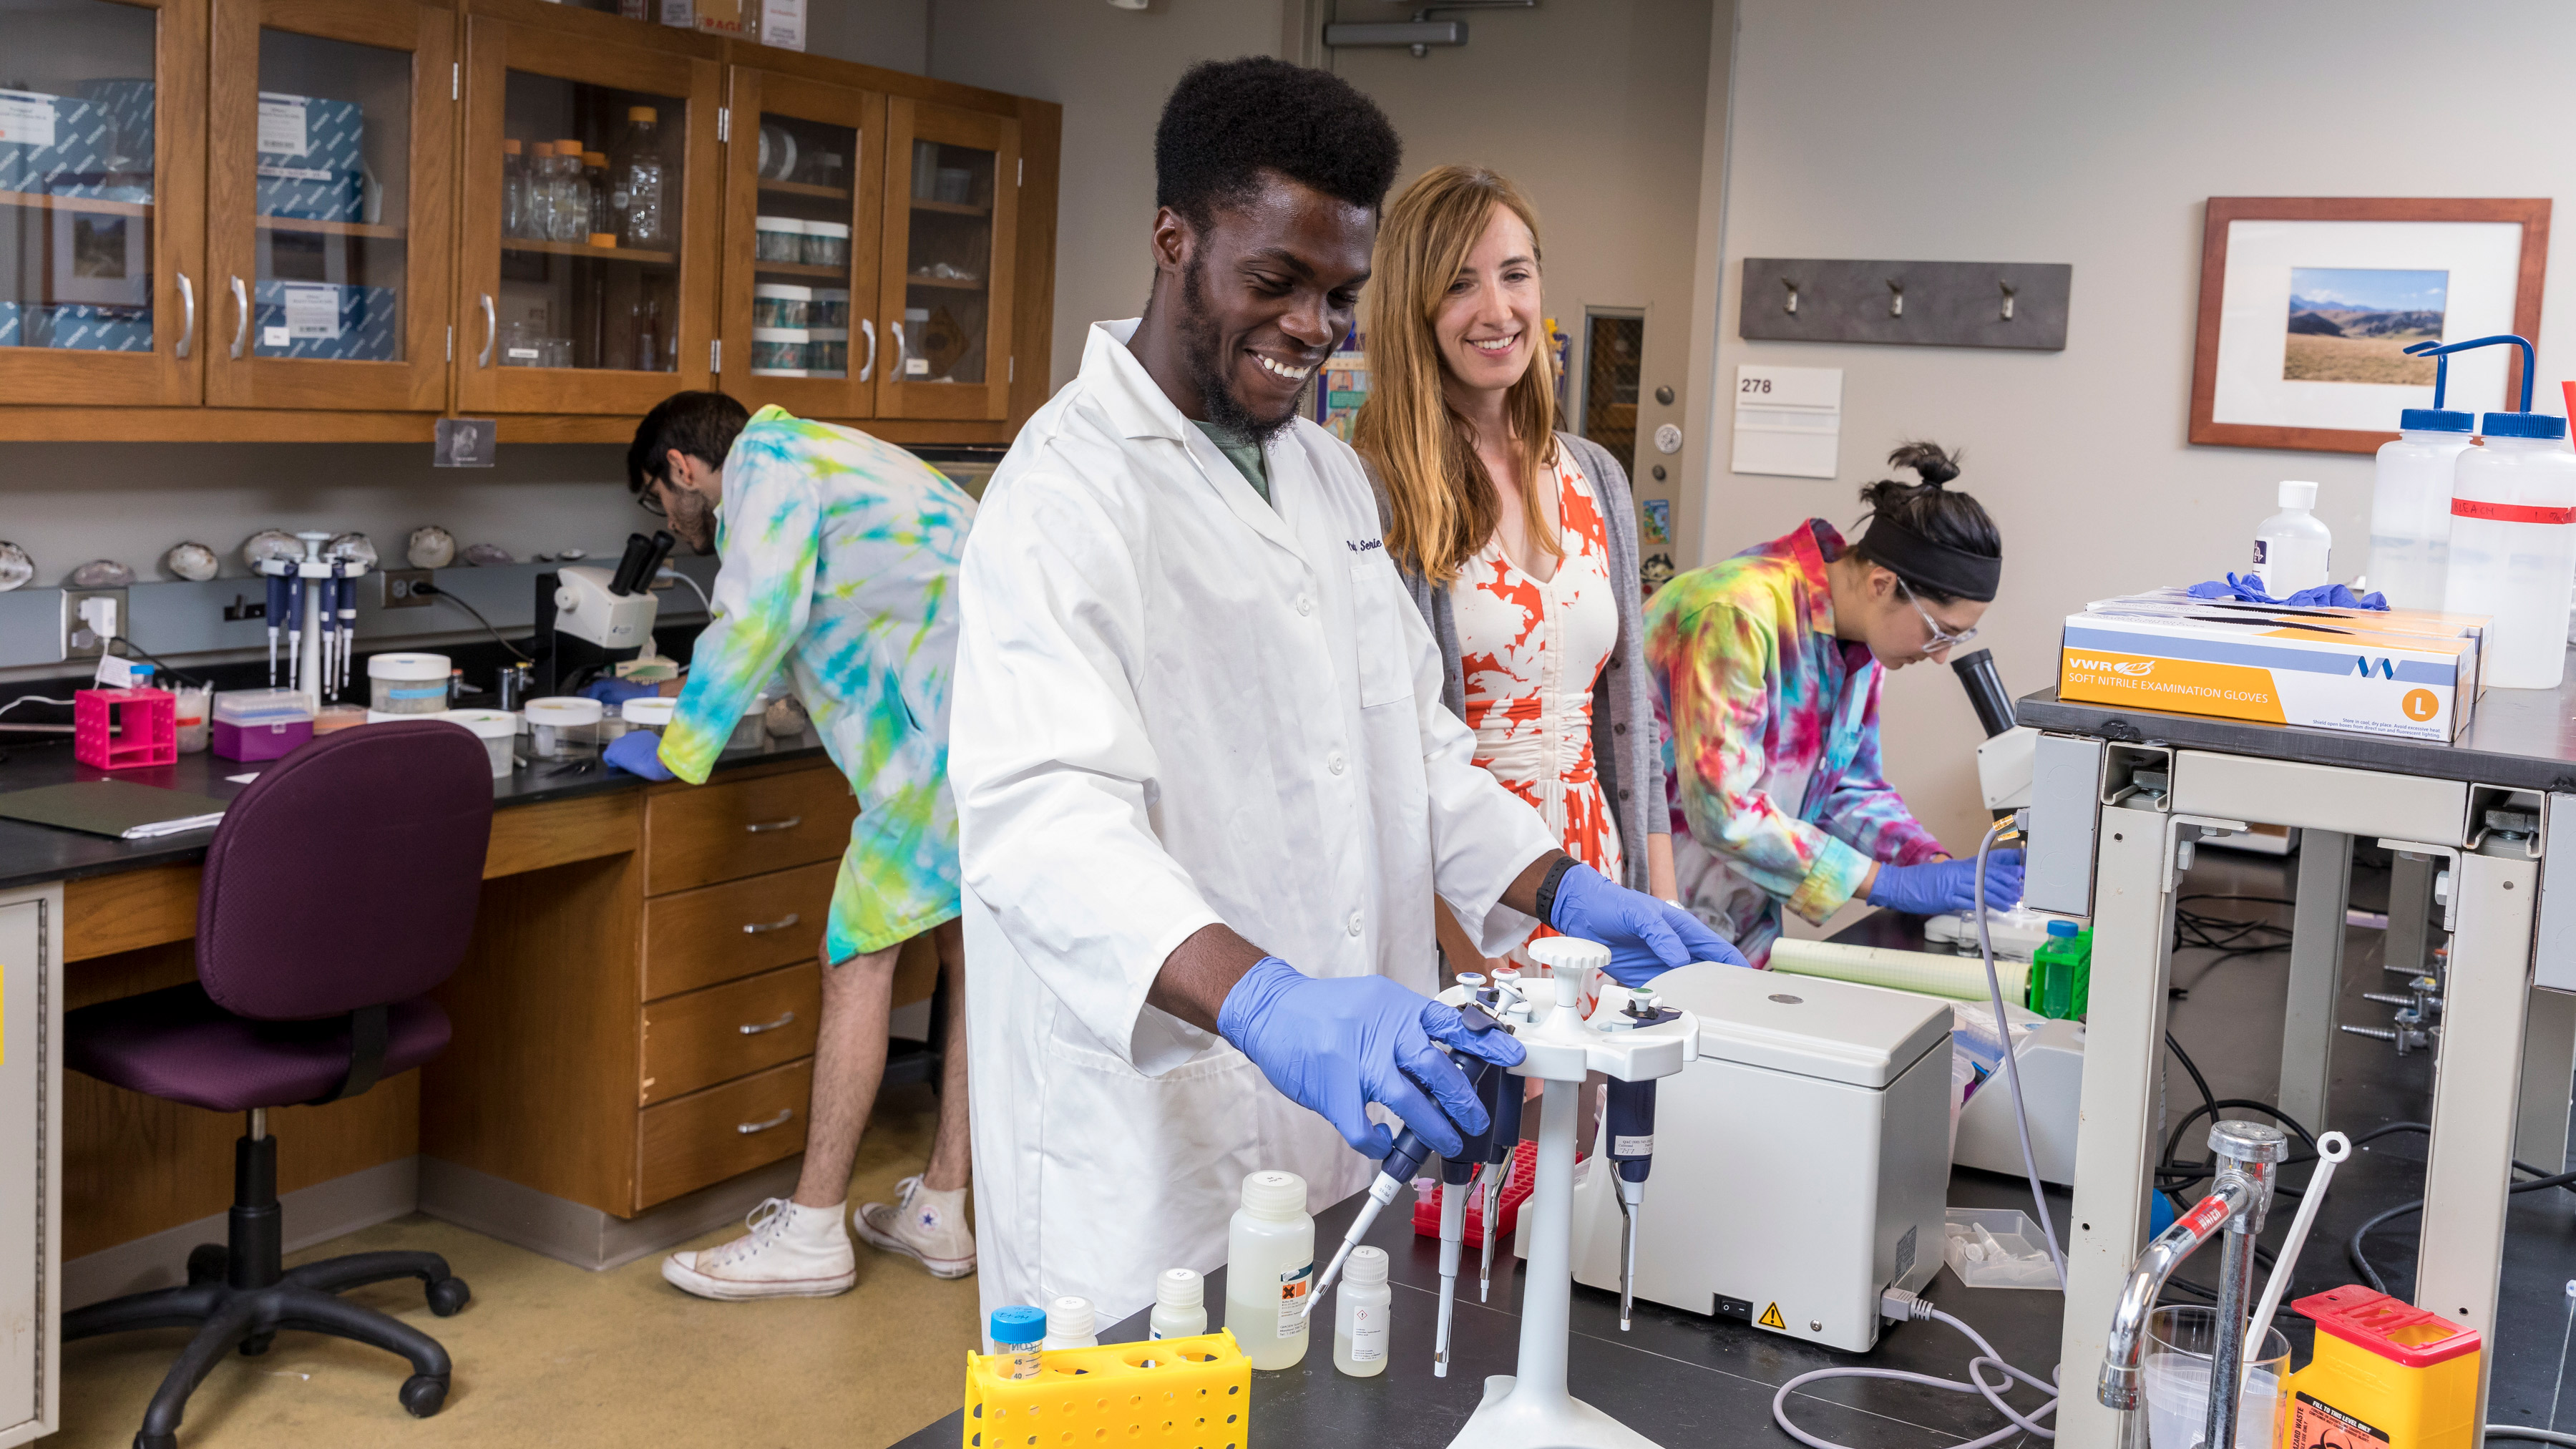 Photo of students working in a science lab.